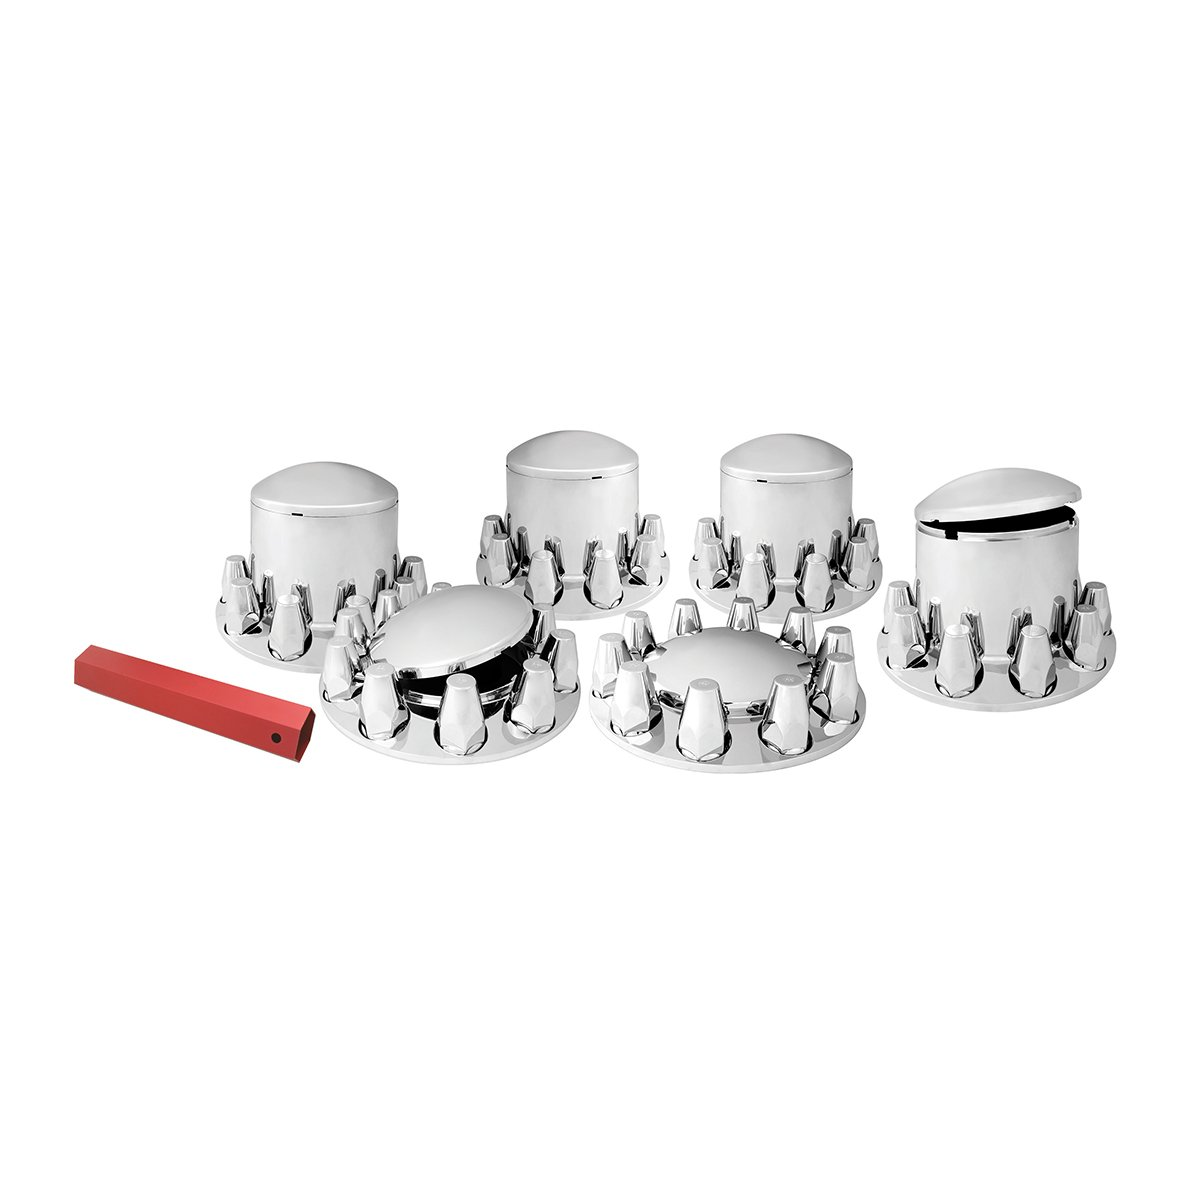 Grand General 40230 Chrome Plastic Complete ABS Axle Cover Set (2 Front and 4 Rear with Standard Hub Caps and Screw-On 33mm Lug Nut Covers for Trucks)